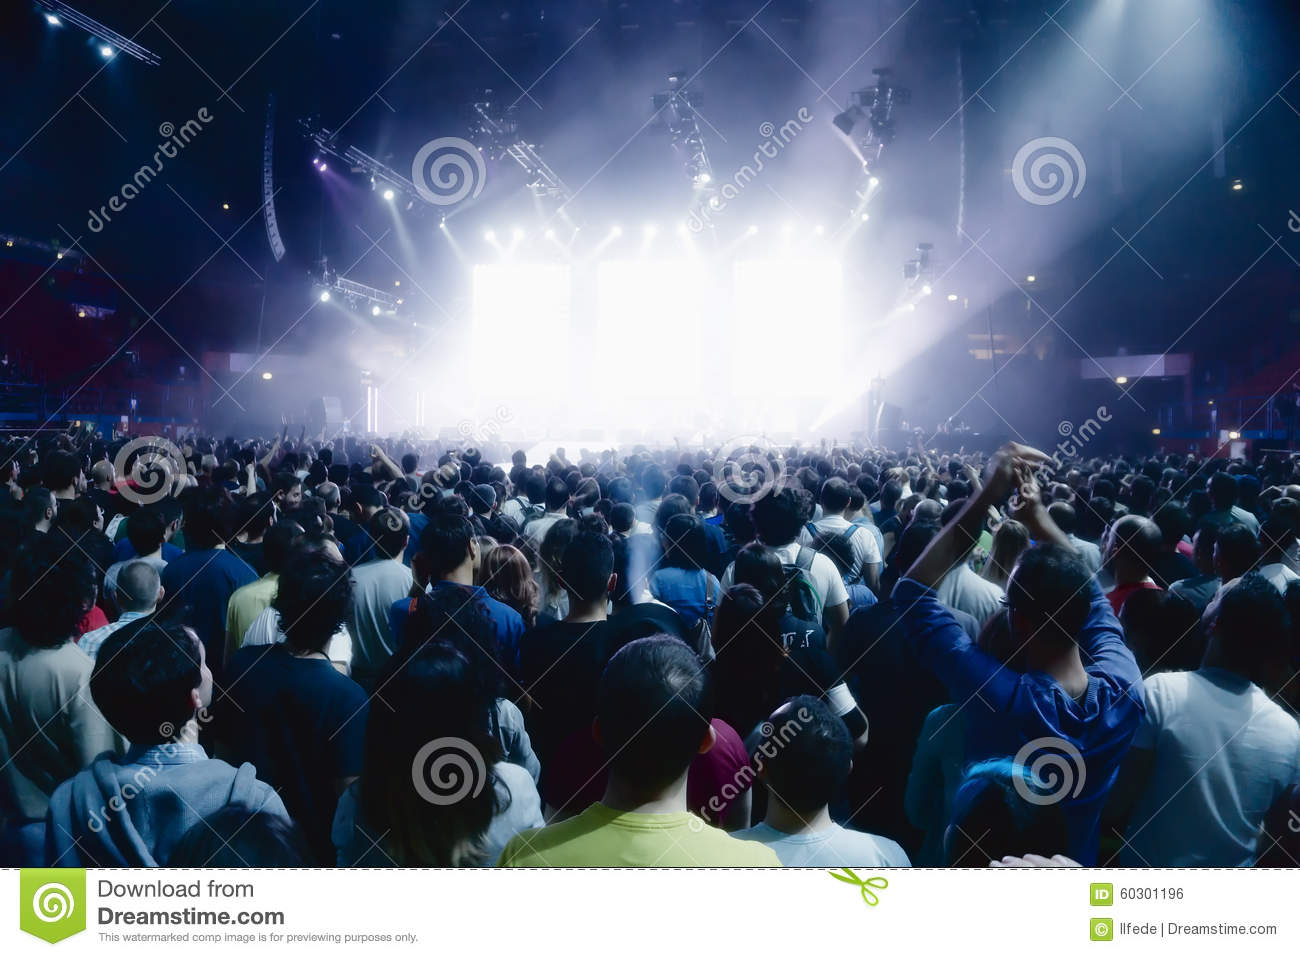 Concert crowd of people in front of bright stage lights